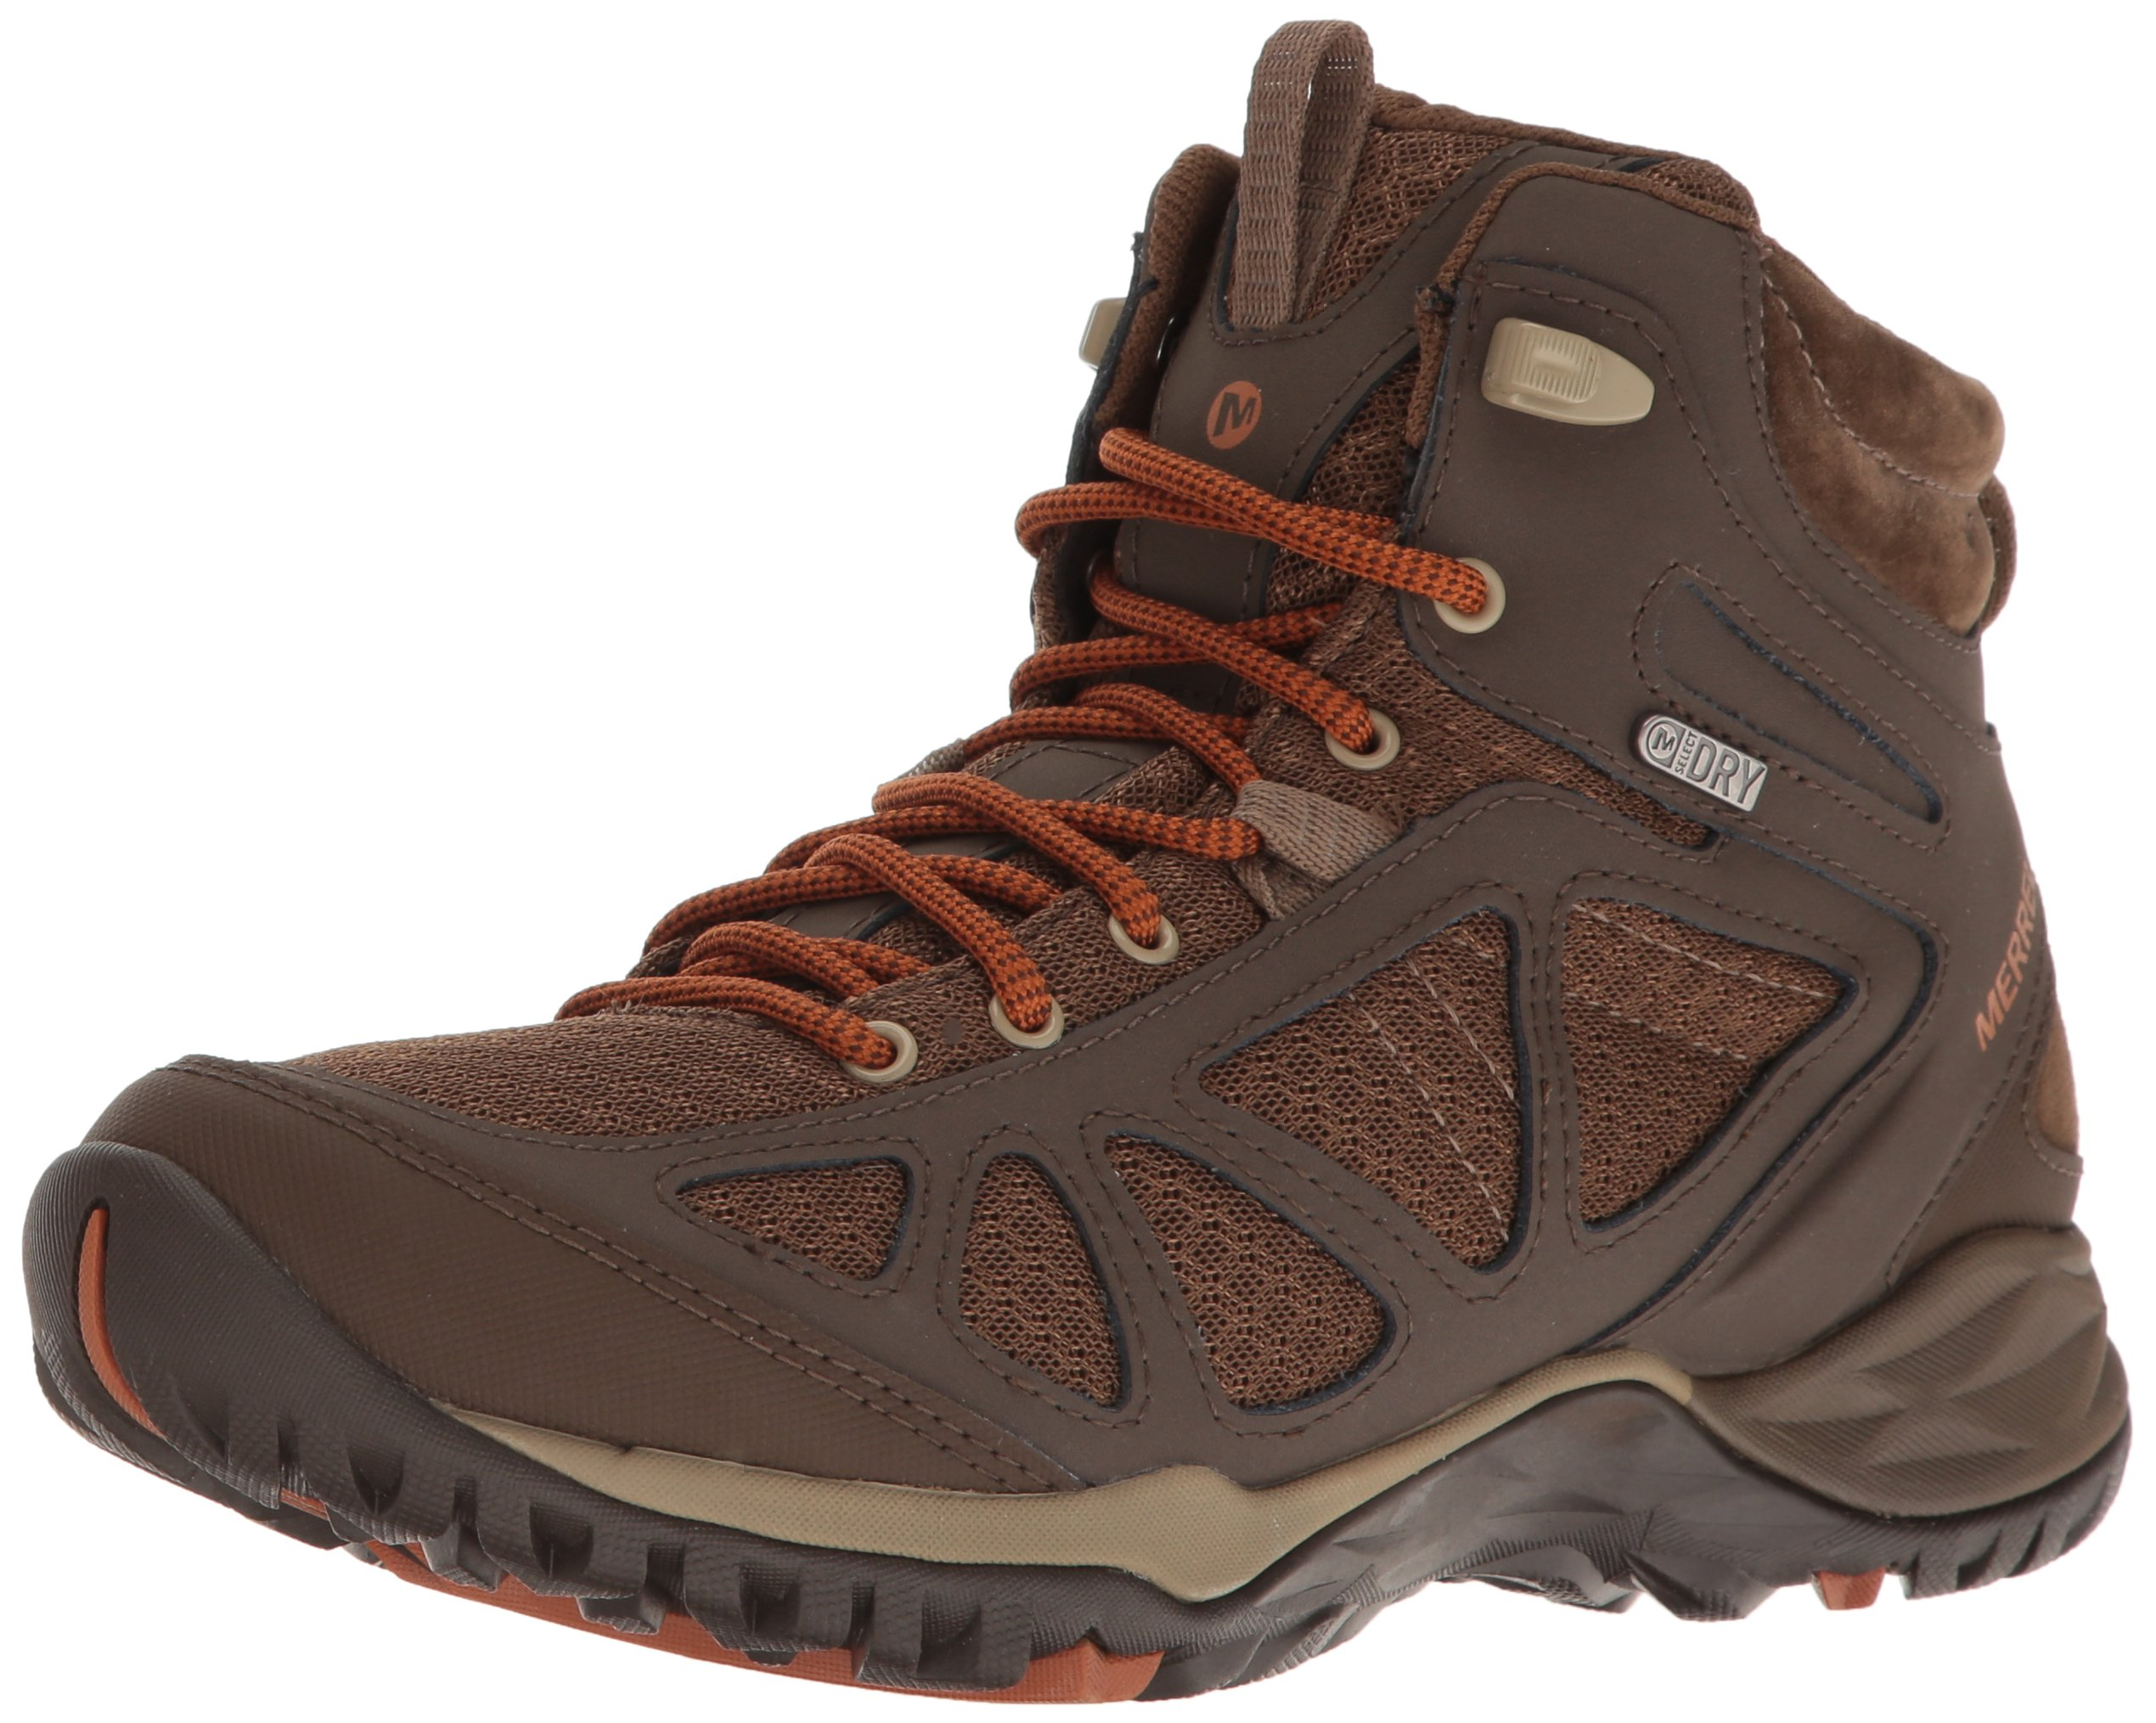 Merrell Women's Siren Sport Q2 Mid Waterproof Hiking Boot, Slate Black, 7 M US by Merrell